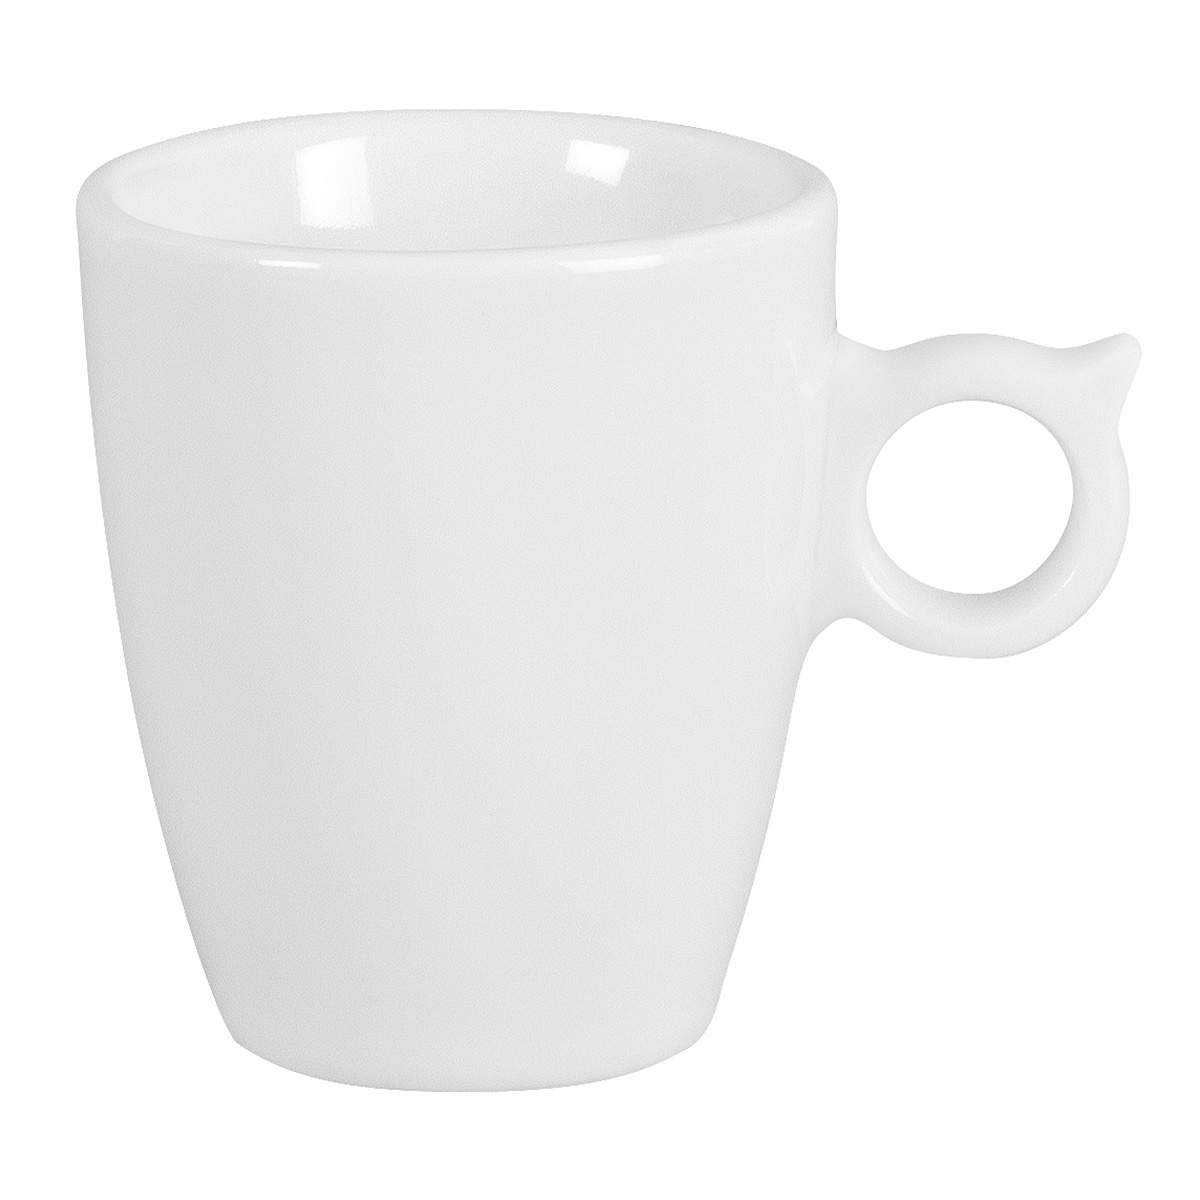 Smoos blanc tasse lungo 20 cl les tasses la table for La table parisienne poitiers